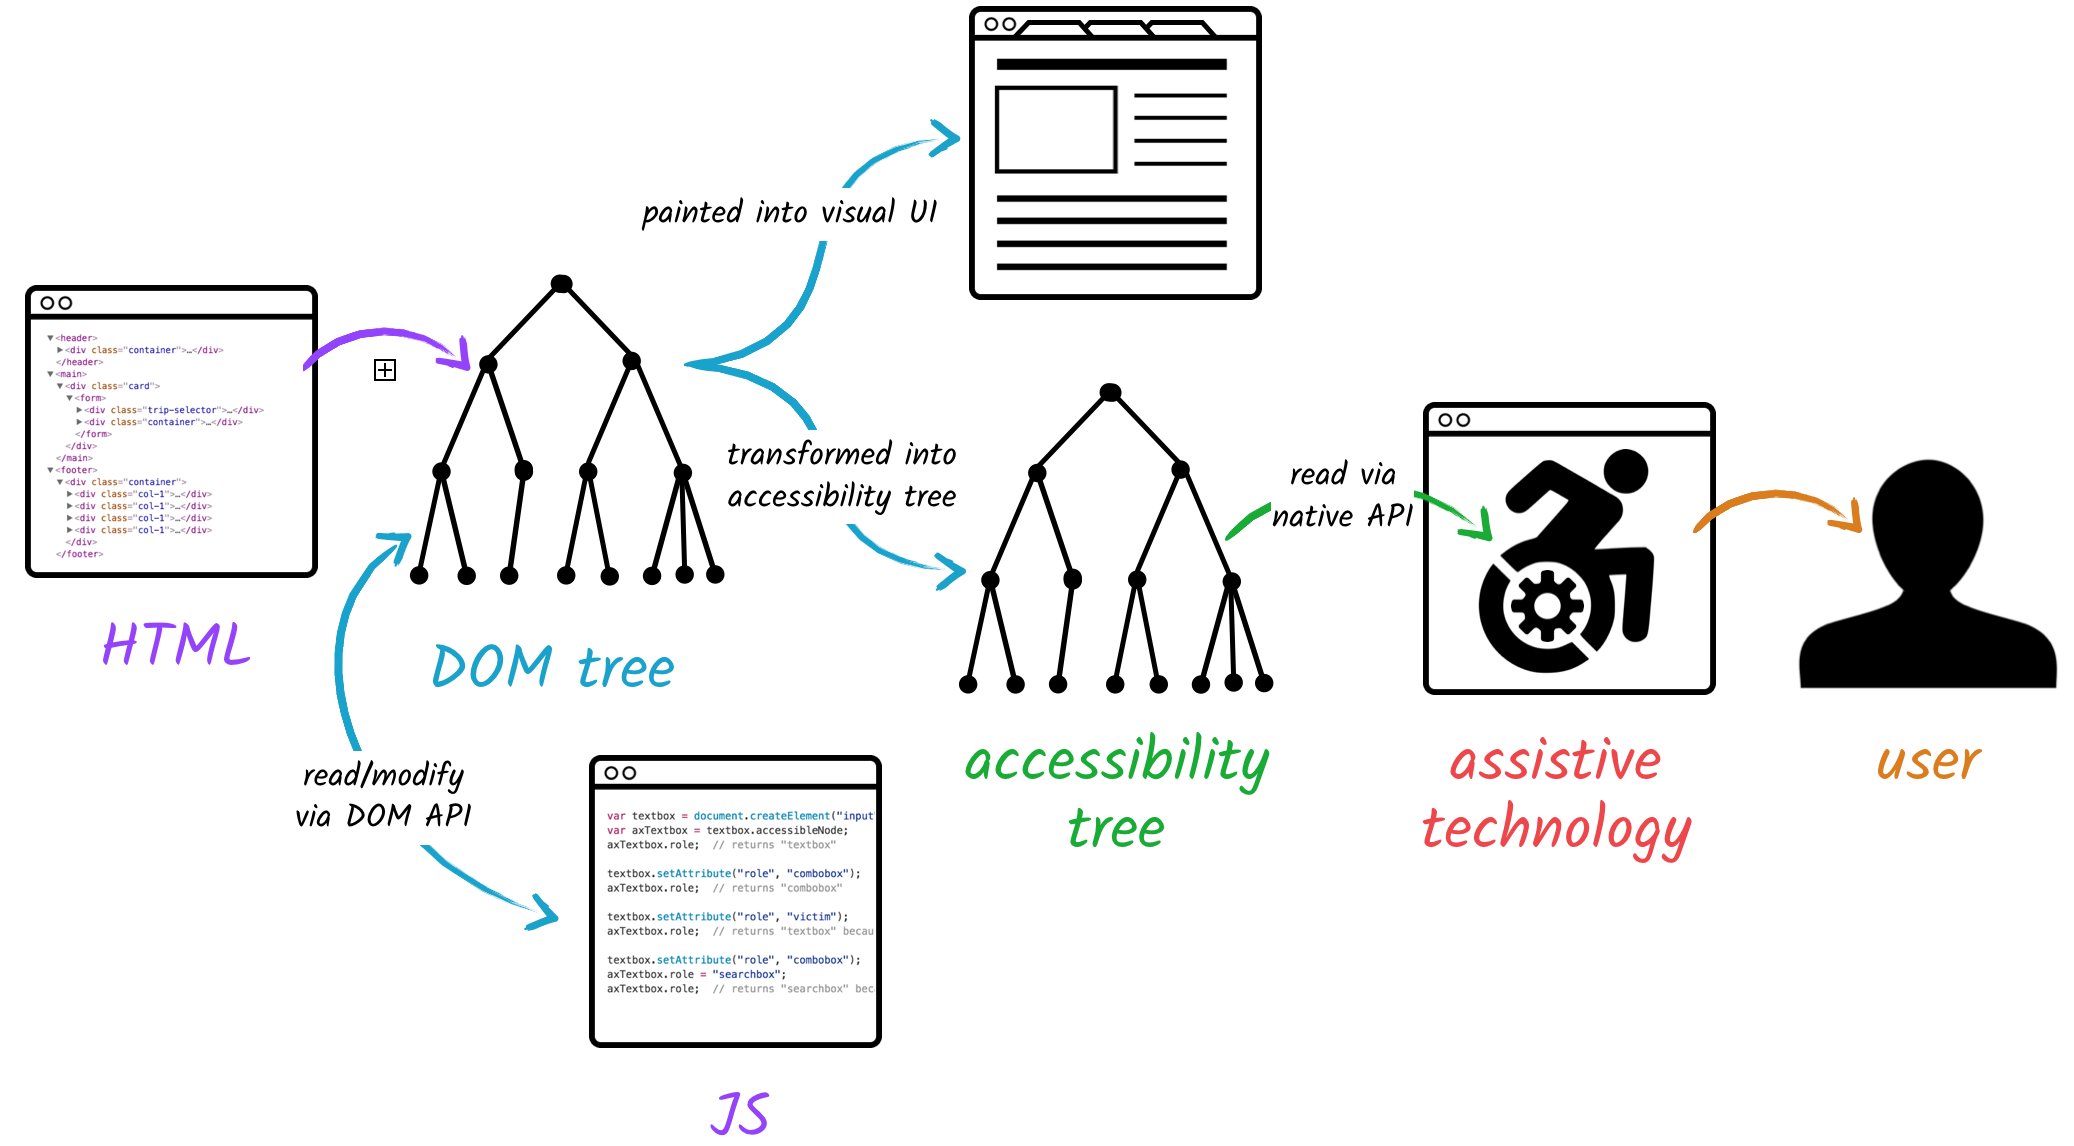 Image showing how the the web browser simultaneously paints the visual UI and also updates the accessibility tree.